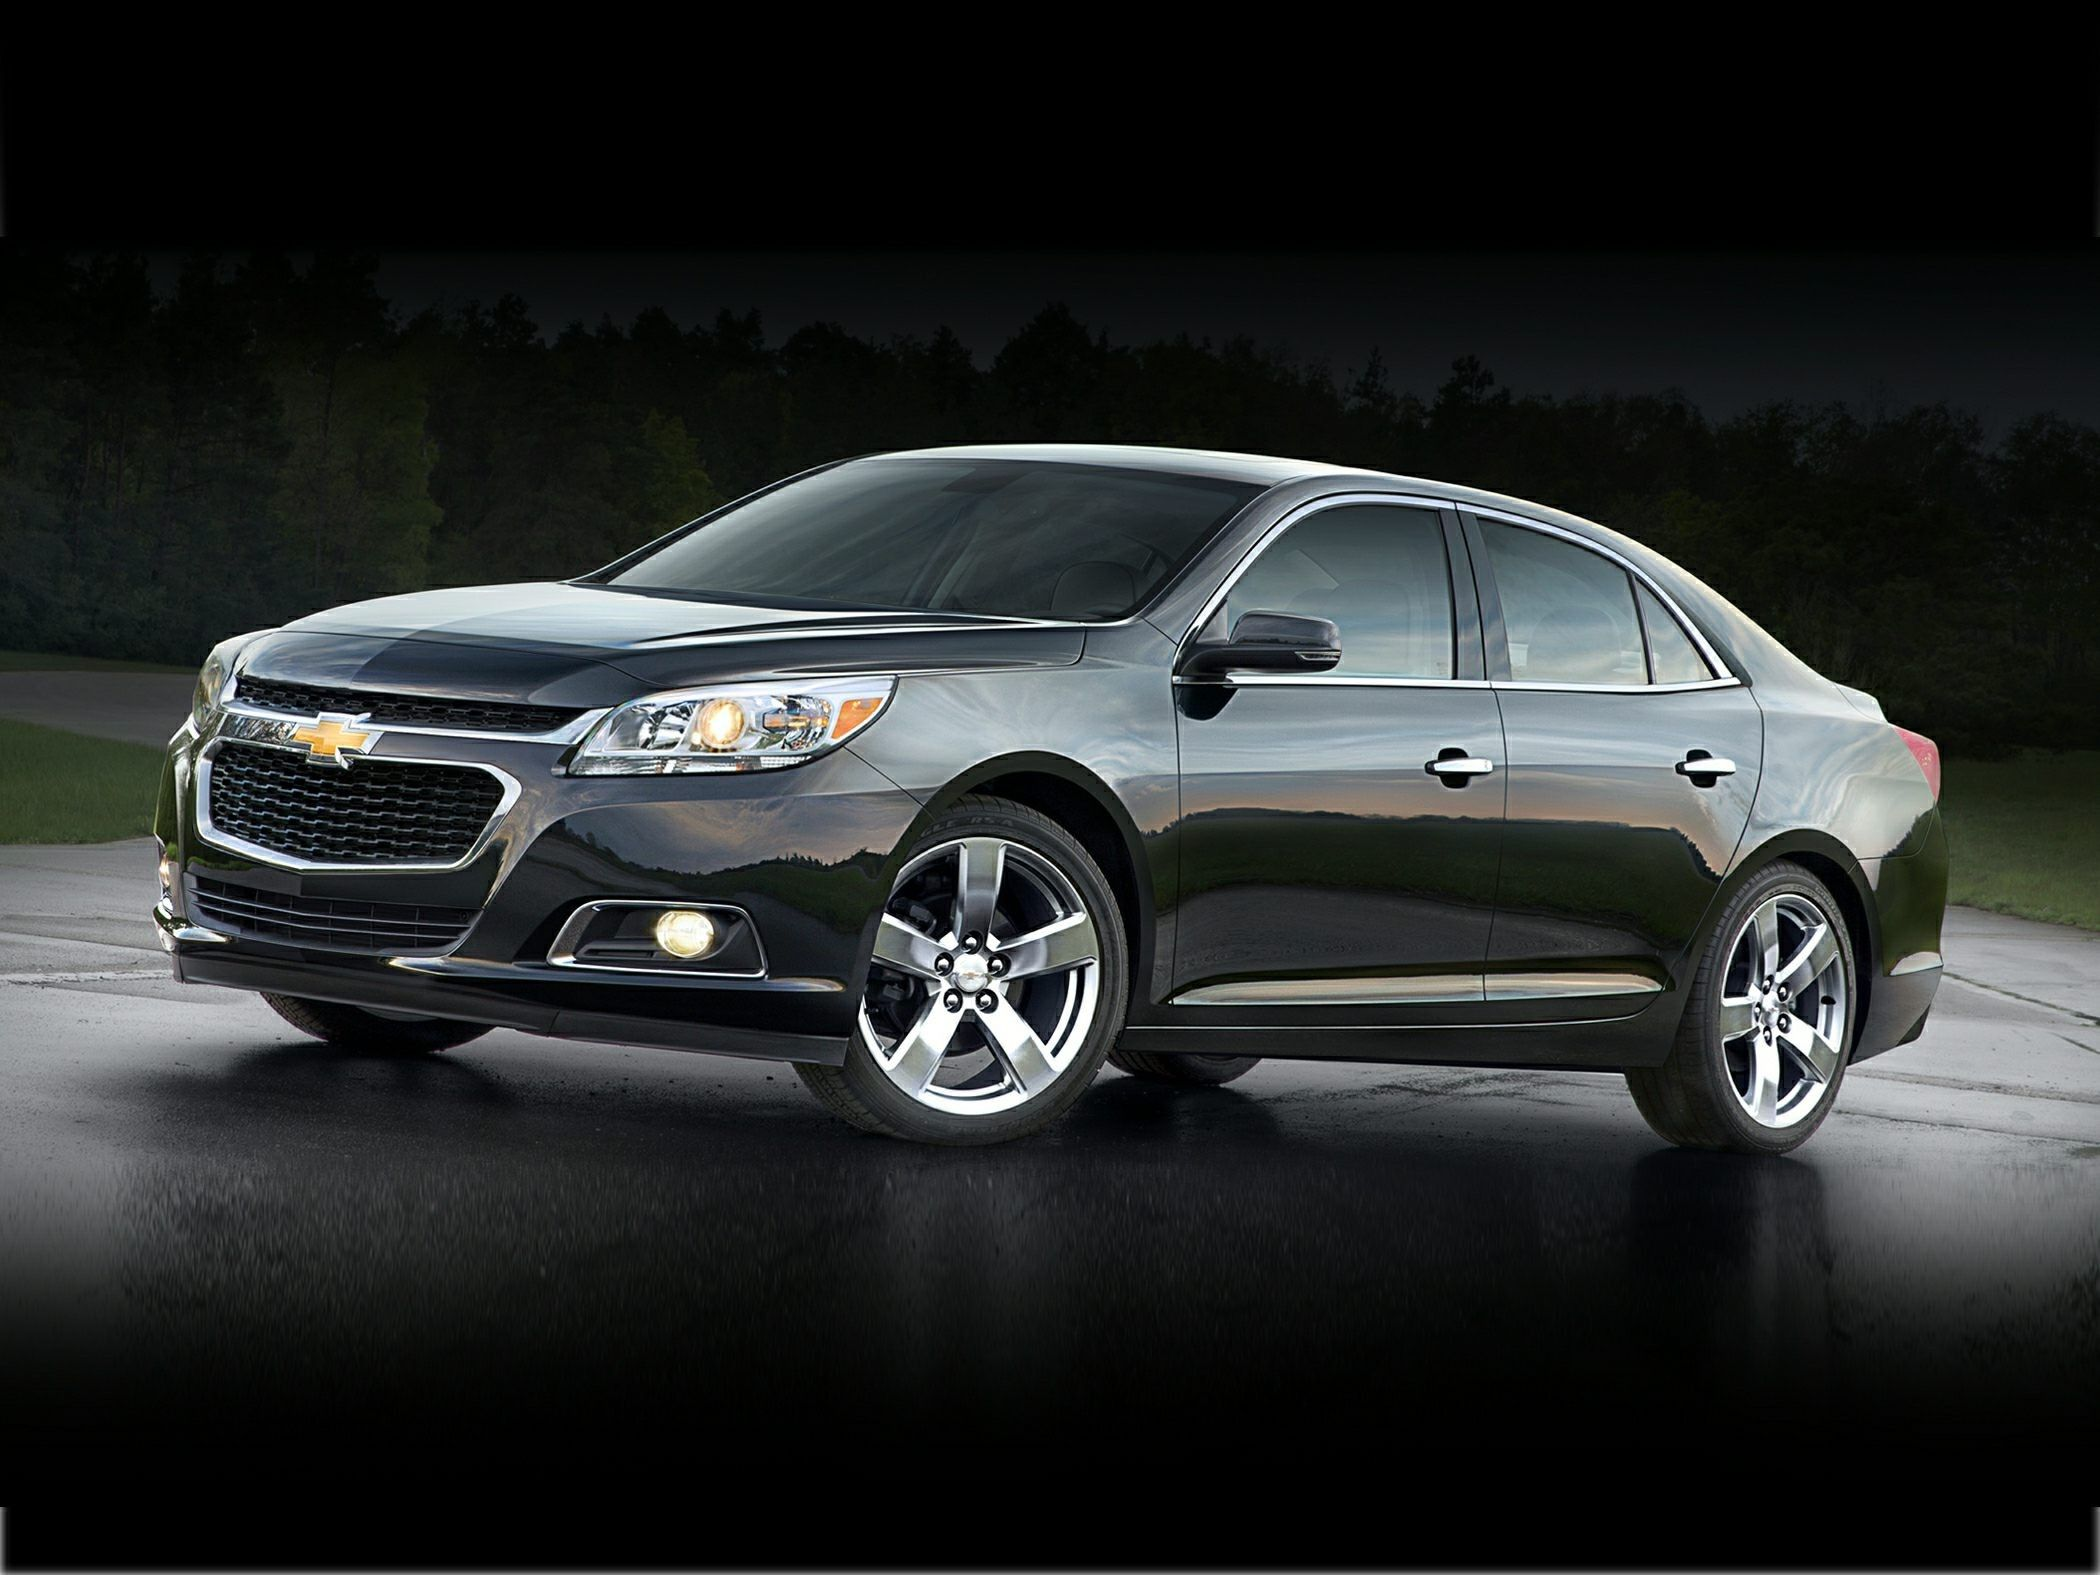 Best Furniture Ideas Ever Chevrolet Malibu Chevrolet Malibu 2014 Chevrolet